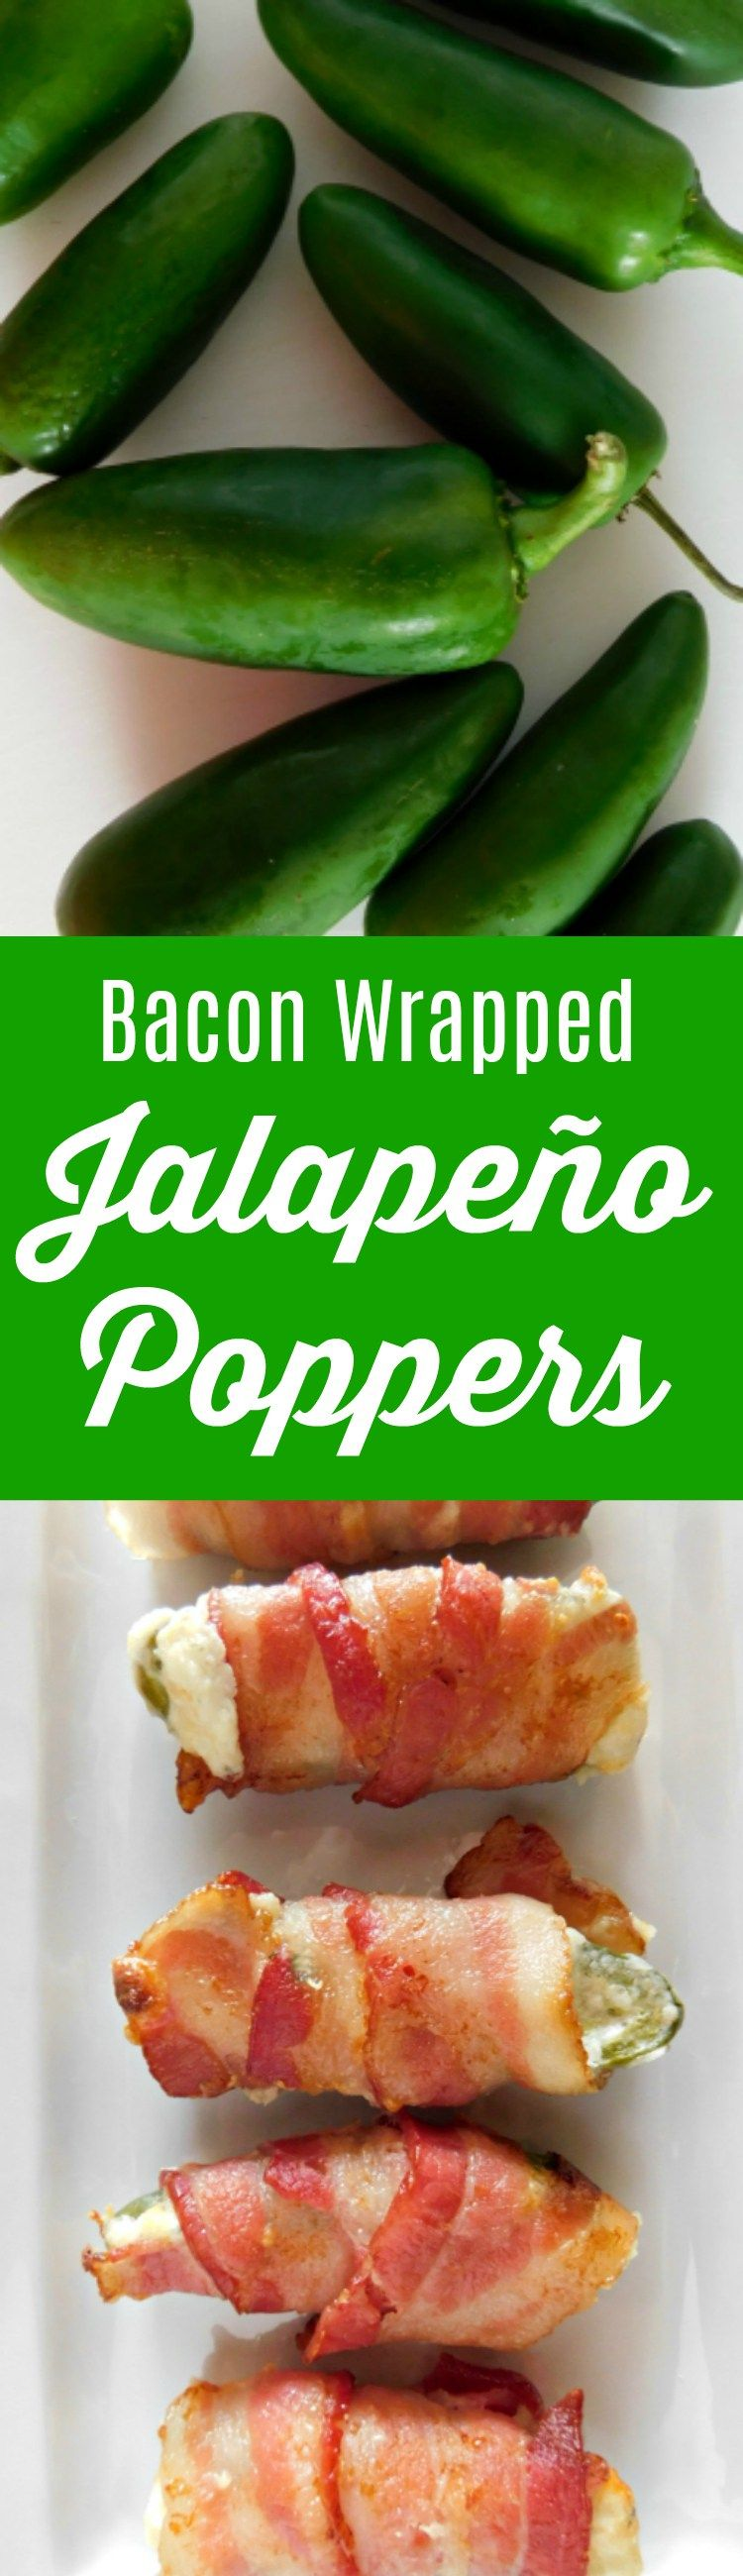 Bacon Wrapped Jalapeño Poppers #tailgatefood